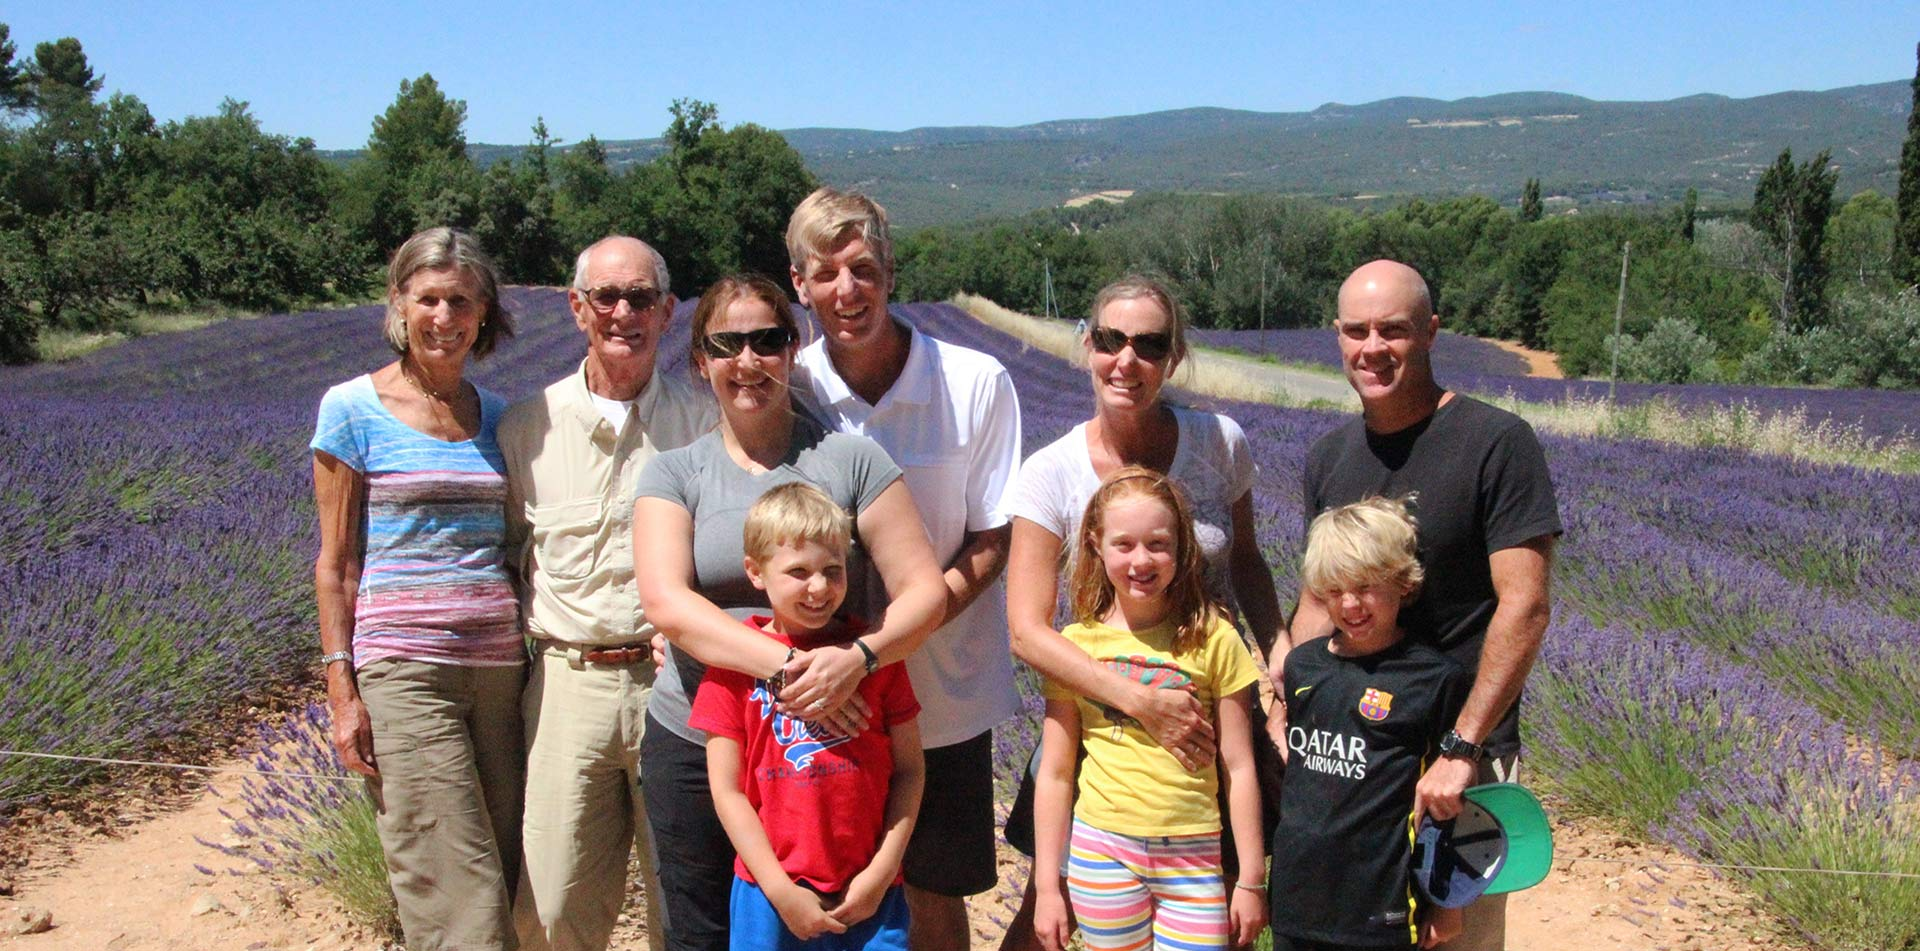 Europe France Provence family smiling in lavender fields in Luberon Regional Nature Park - luxury vacation destinations